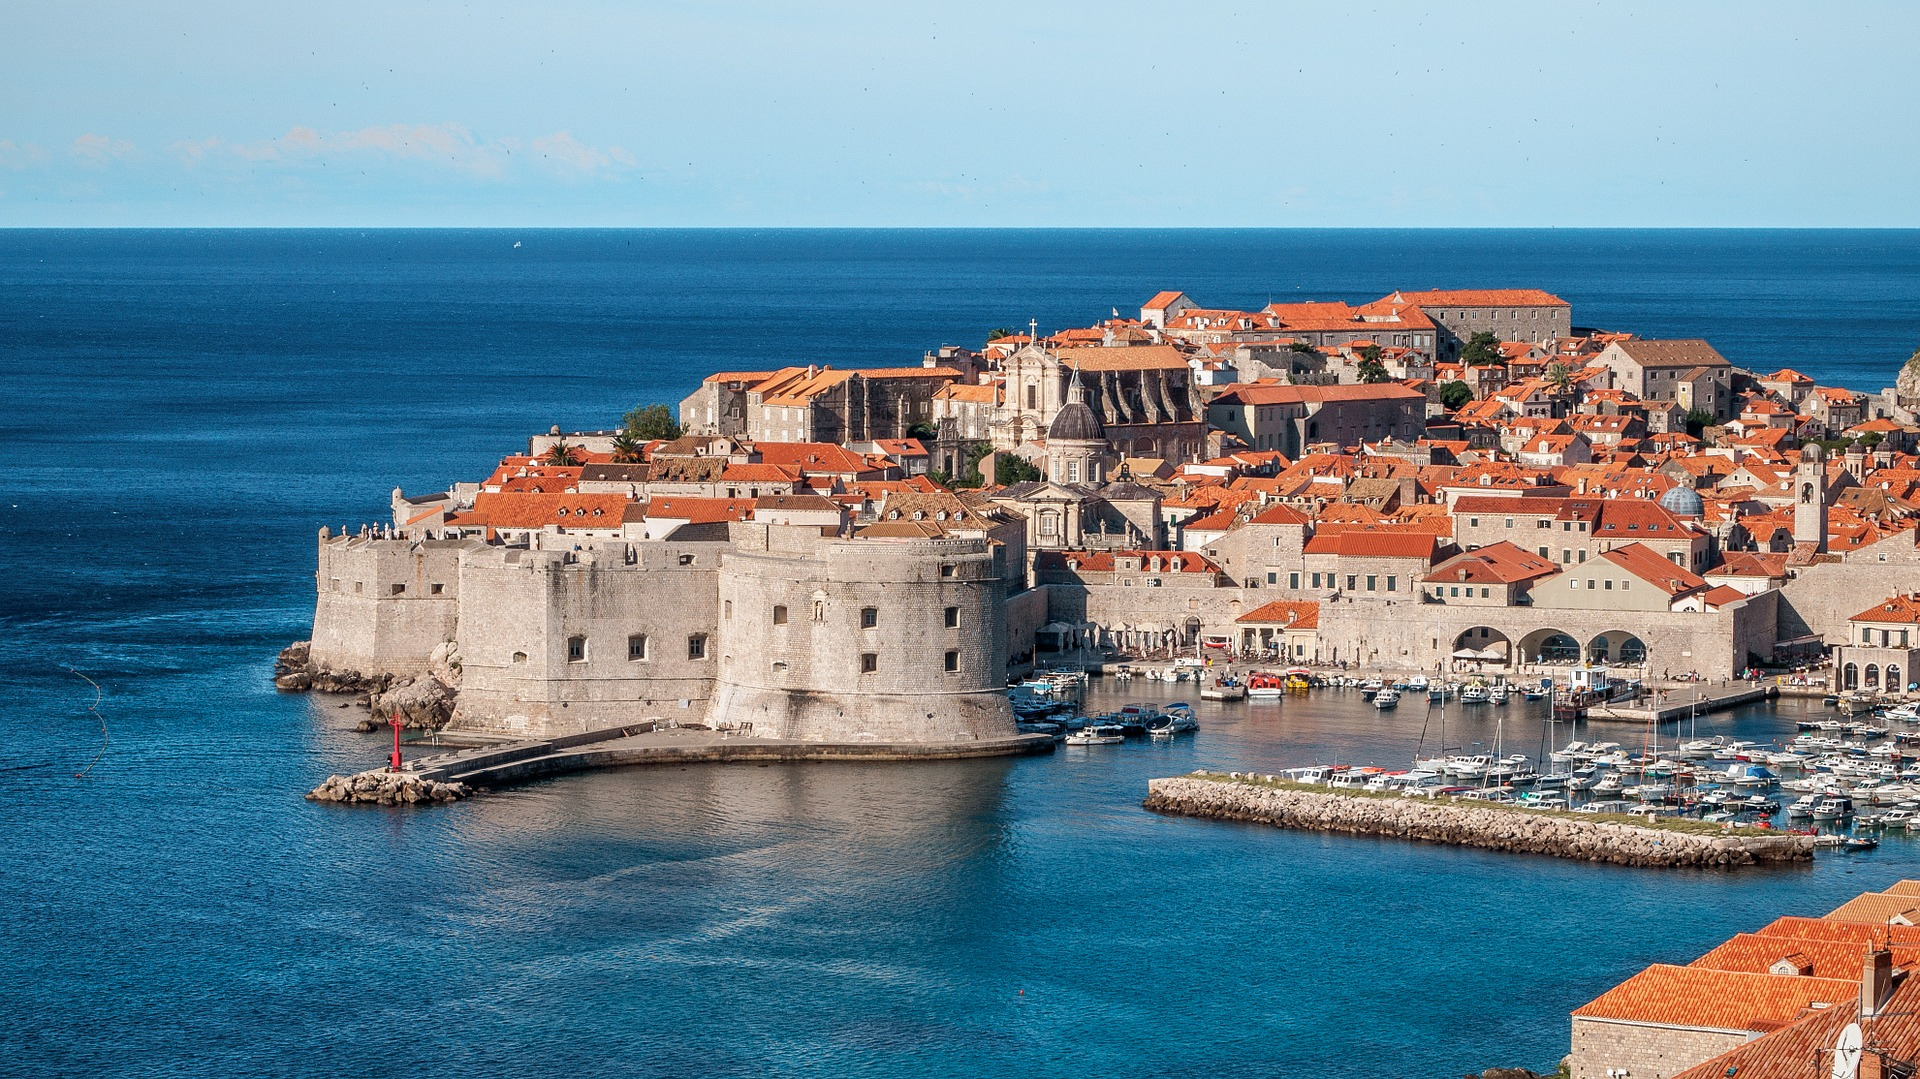 Overview of Dubrovnik